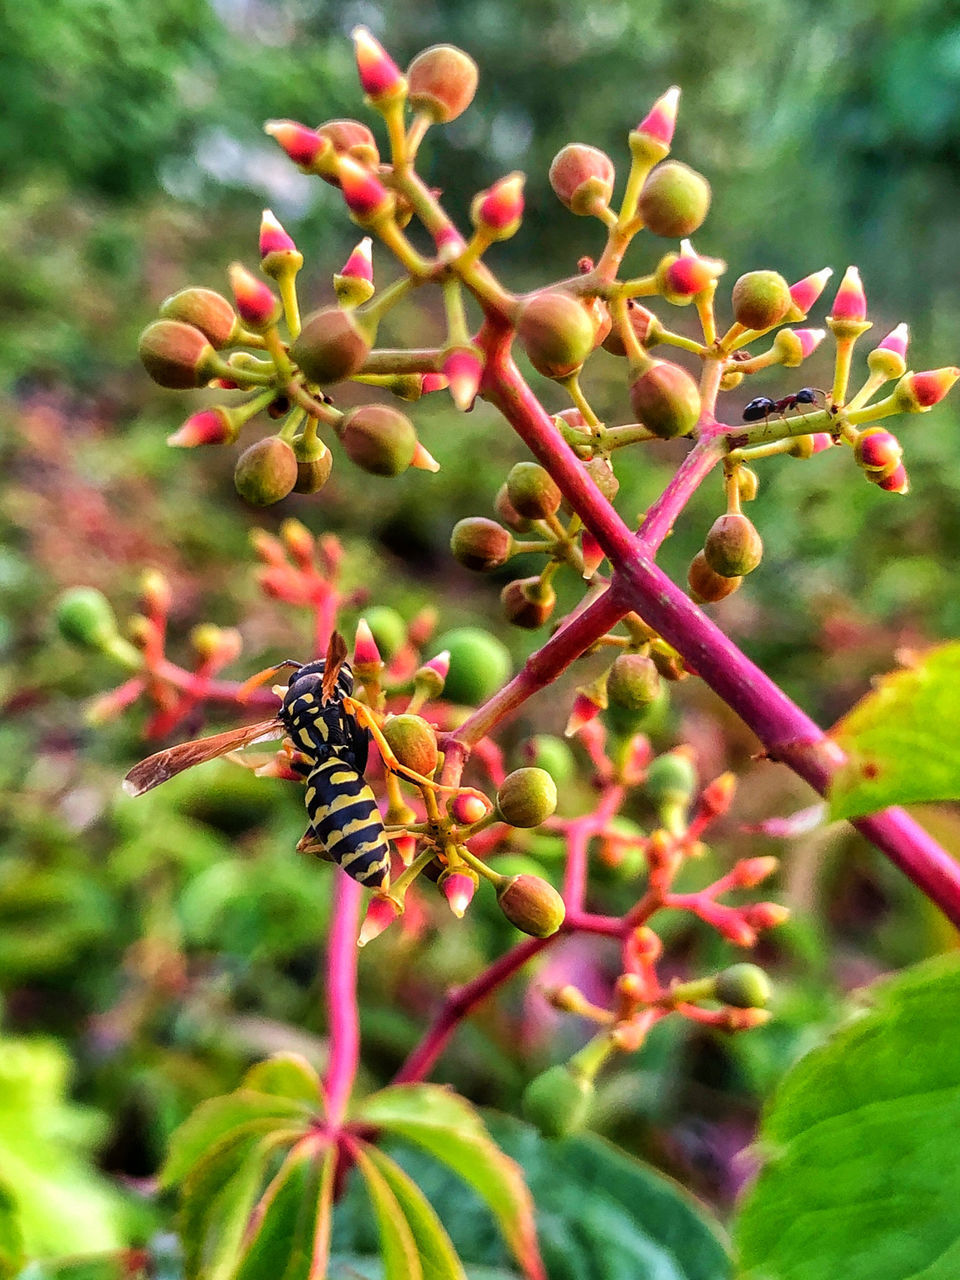 CLOSE-UP OF RED INSECT ON PLANT